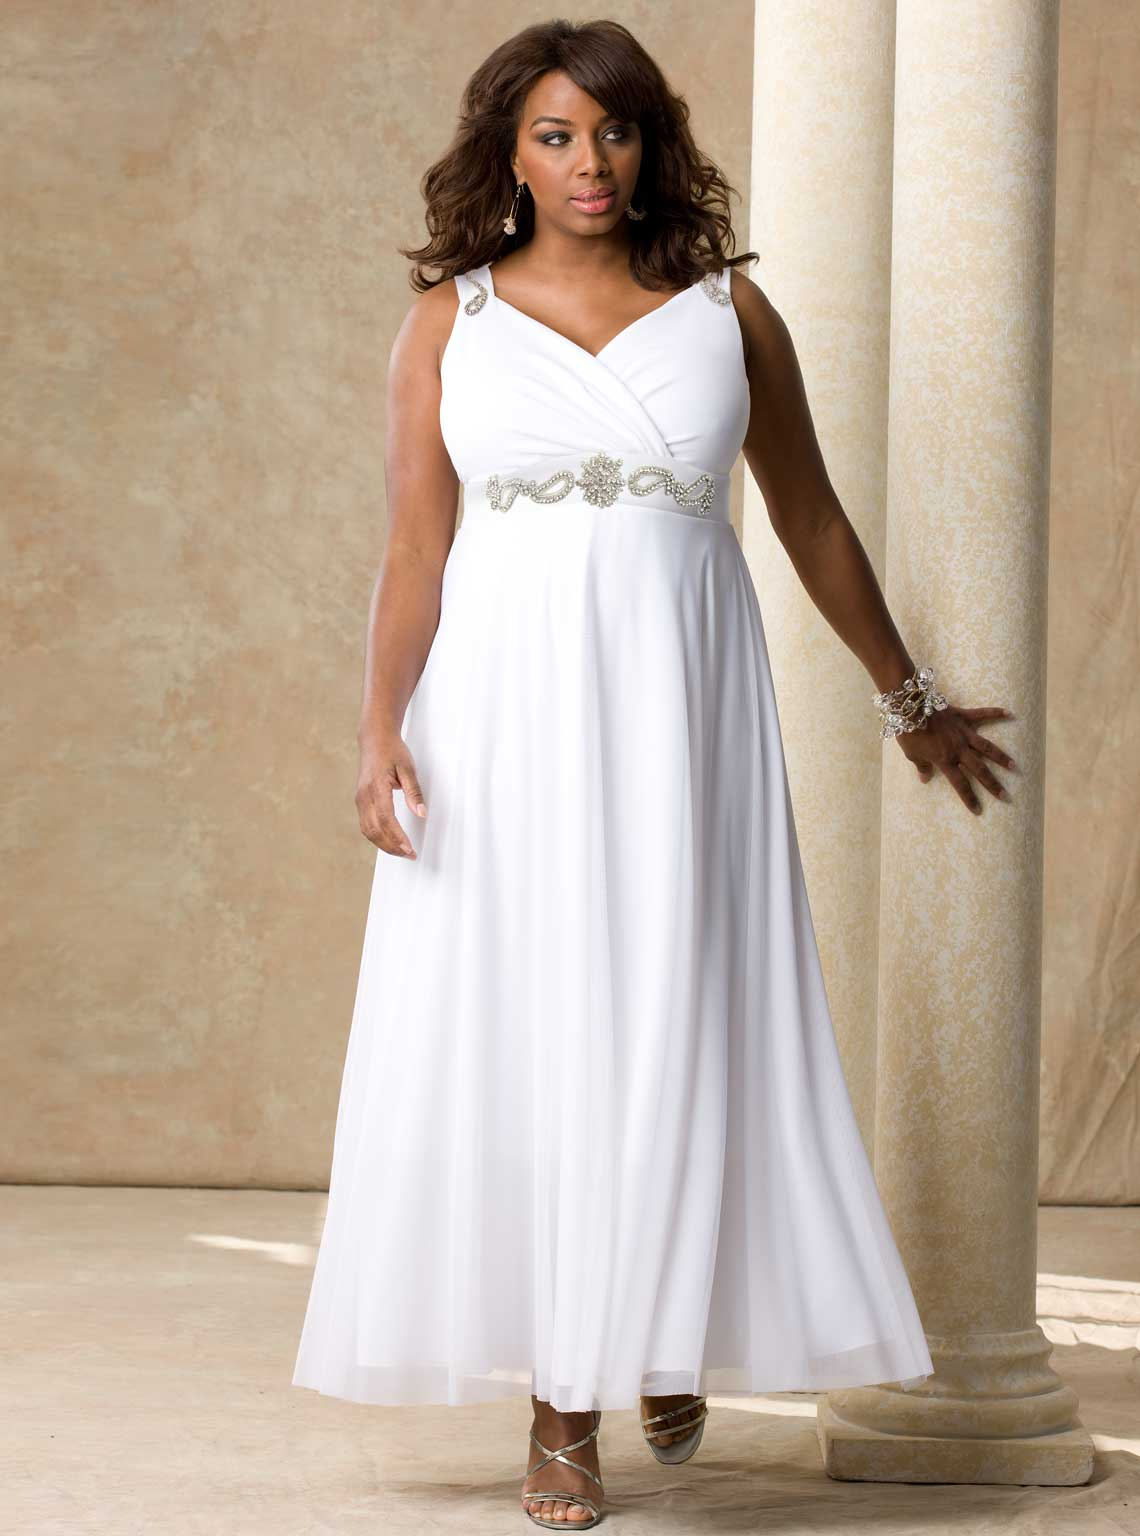 Evening dress 10 11 for Wedding dresses for plus size mature brides